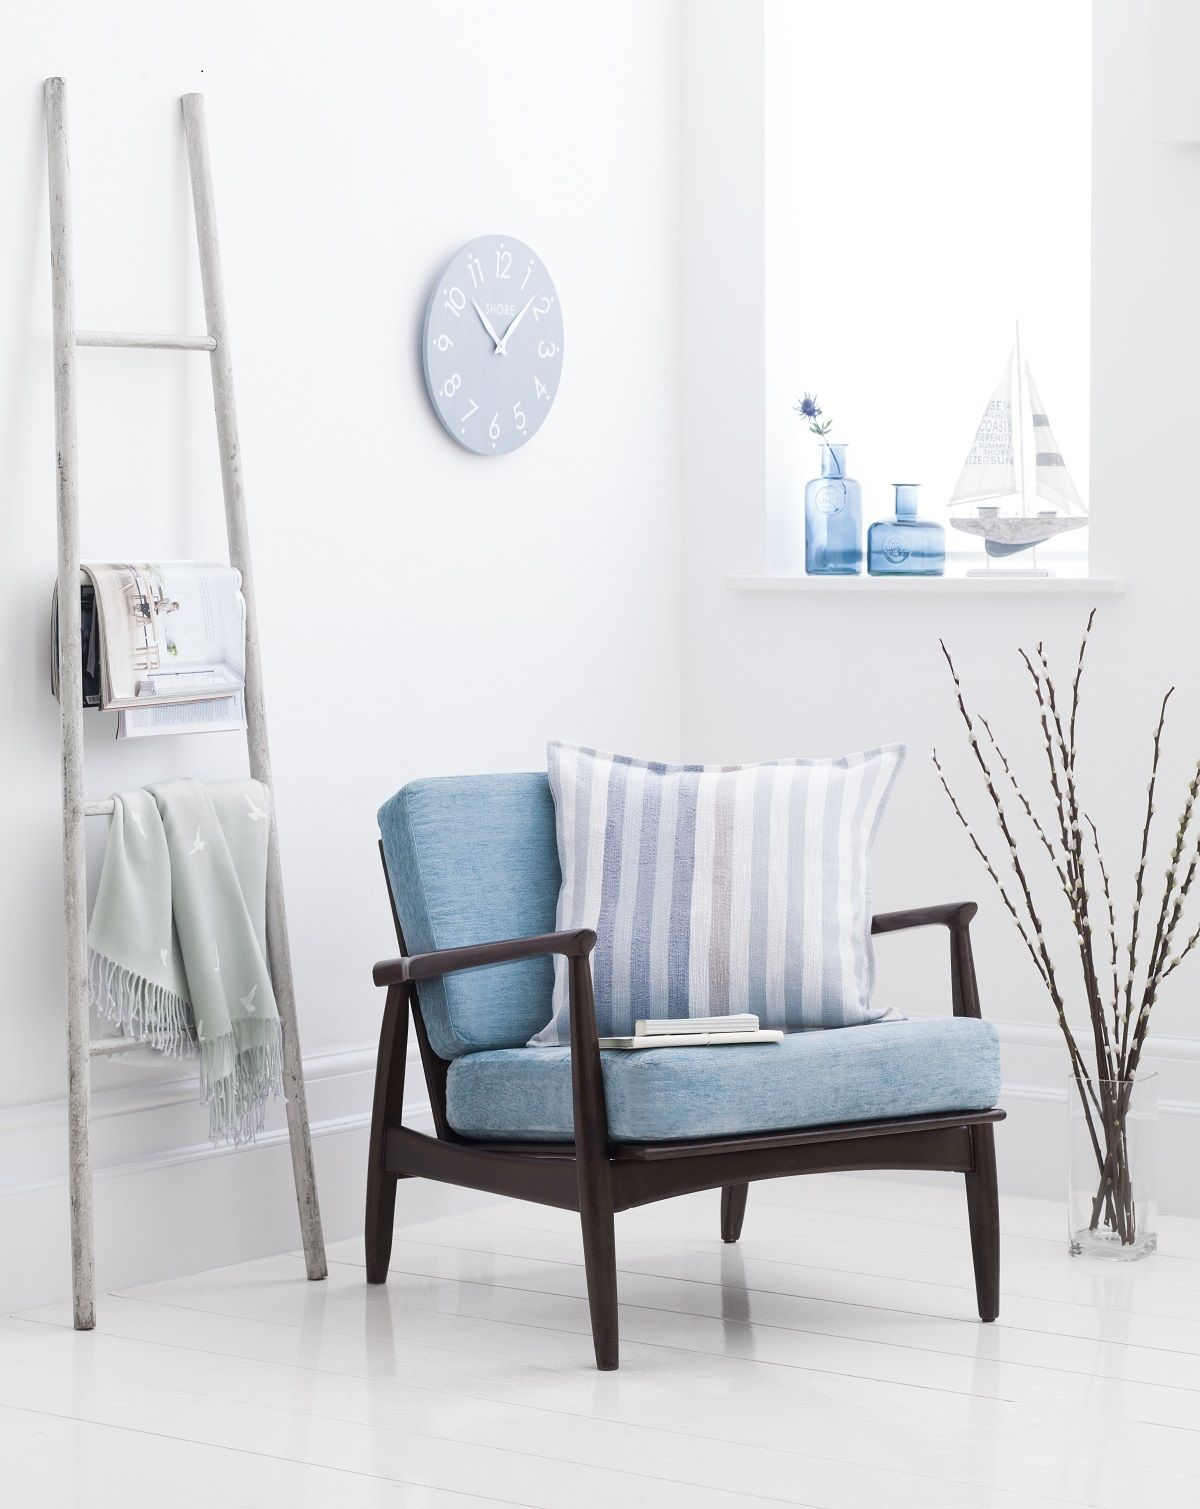 Let Sainsbury's Cool Coastal Collection Refresh Your Home